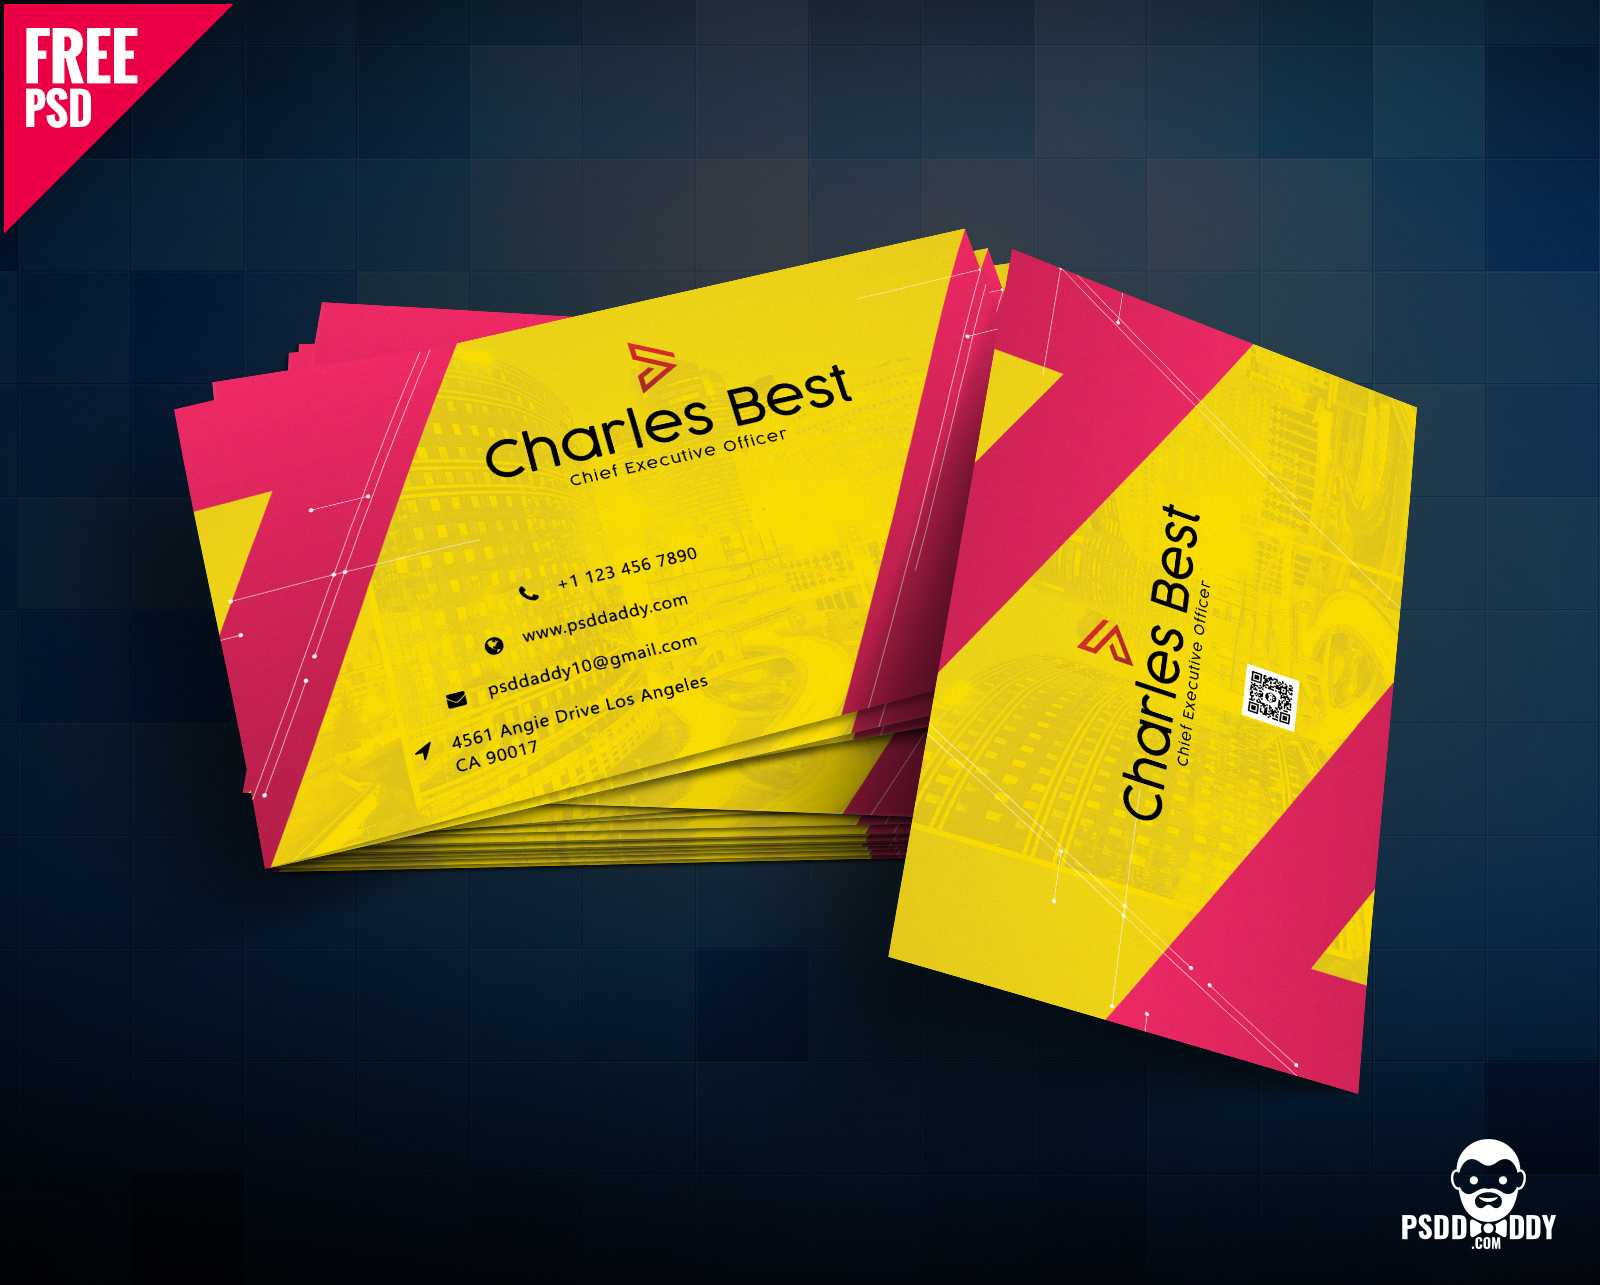 Download] Creative Business Card Free Psd | Psddaddy Inside Visiting Card Psd Template